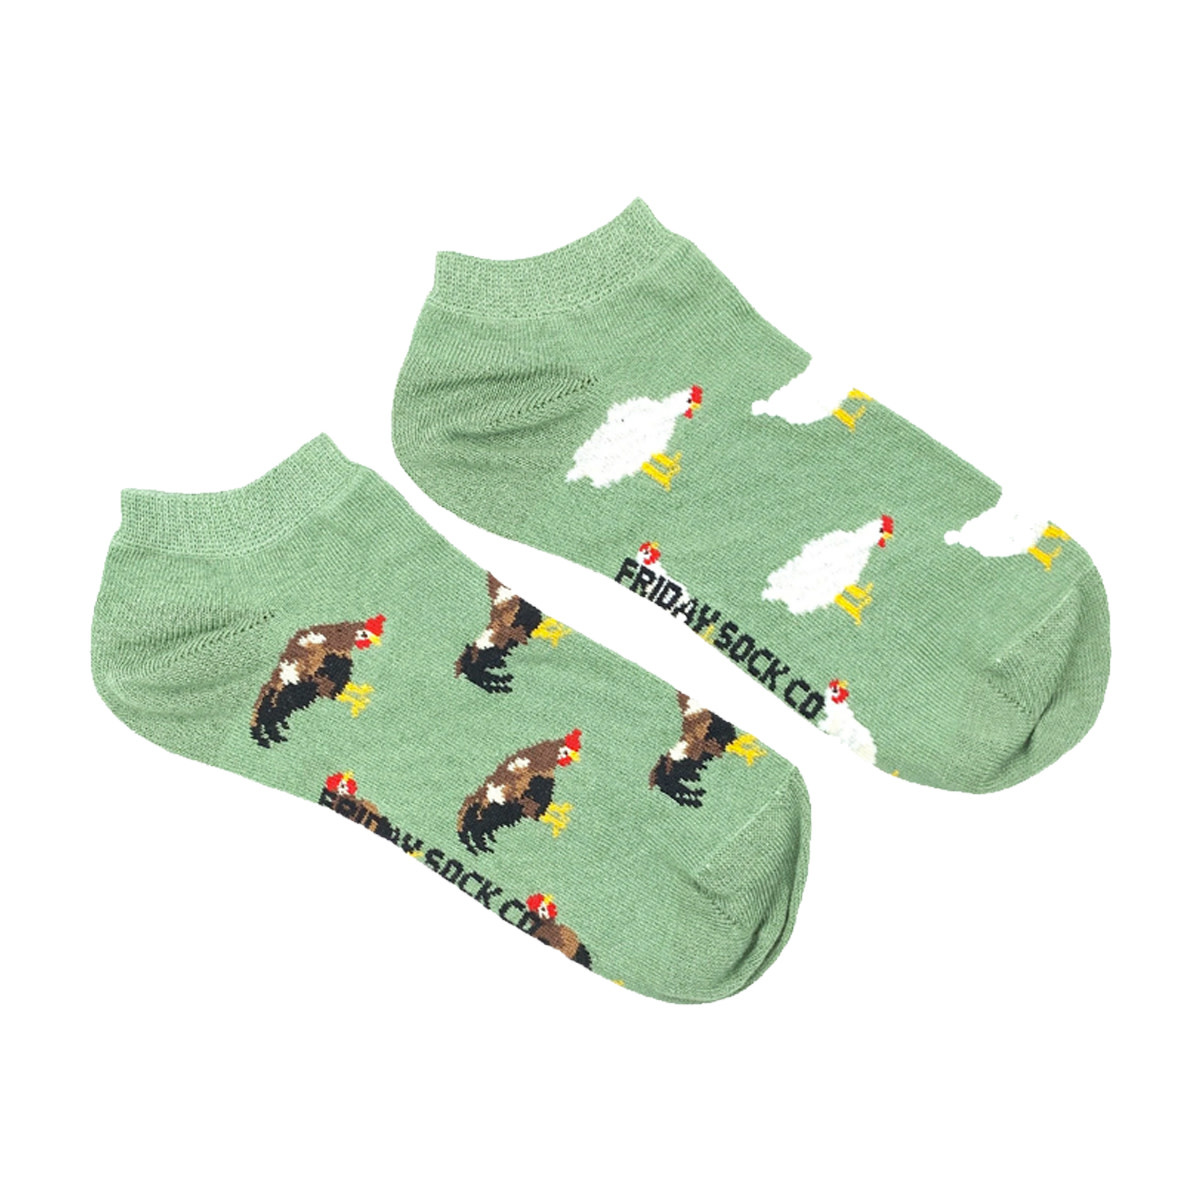 Friday Sock Co. Friday Sock Co. Women's Chicken & Rooster Ankle W 5 - 10 (M - 4 - 8)